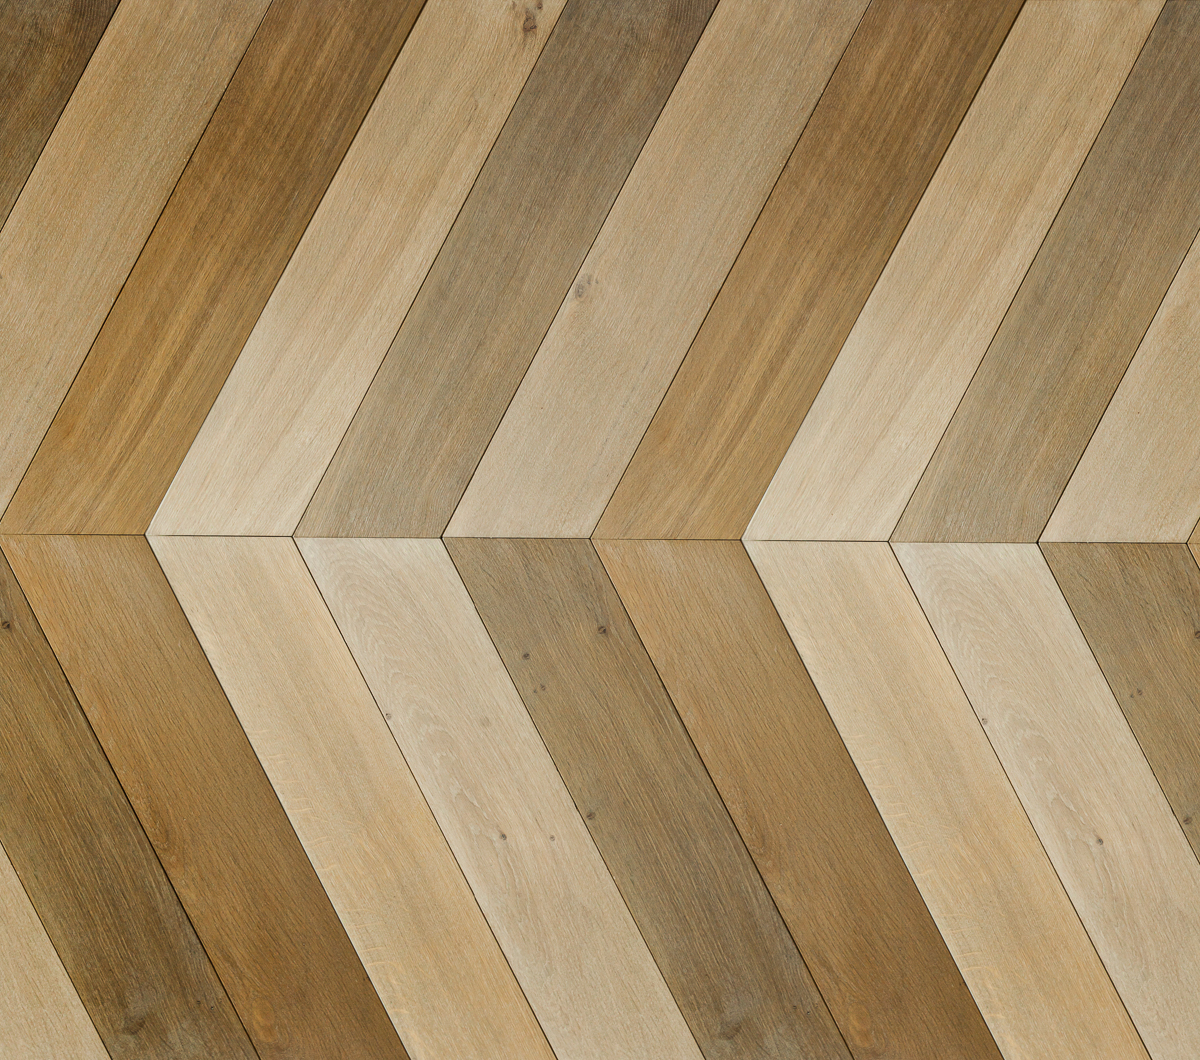 Bespoke Colours In Parquet